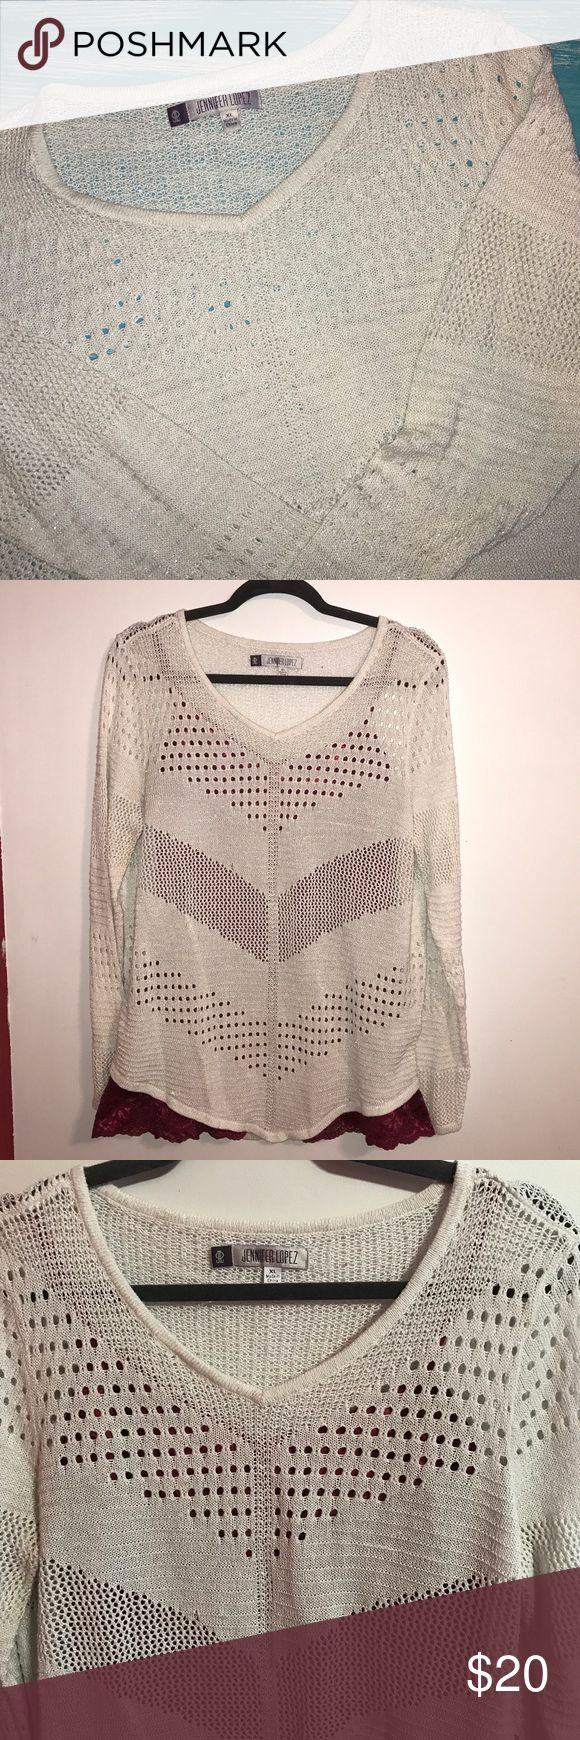 Jennifer Lopez Sweater EUC! Cami is not included, only go show contrast. Beautiful silver thread woven in and would make a great Christmas party sweater. Only hung to take the photo, otherwise it's always folded and stored in a drawer. No trades and firm price. Bundle pricing still applies. Jennifer Lopez Tops